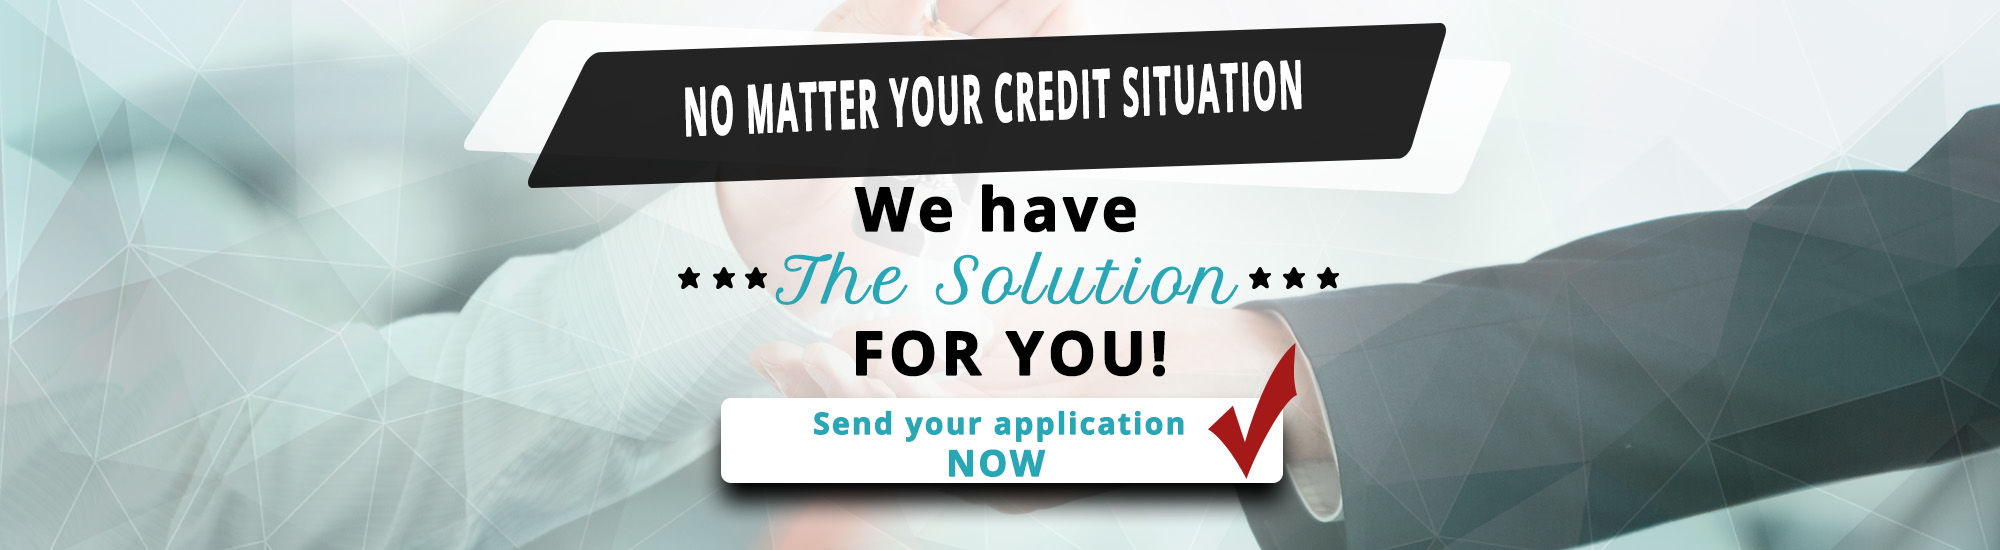 No matter your credit situation